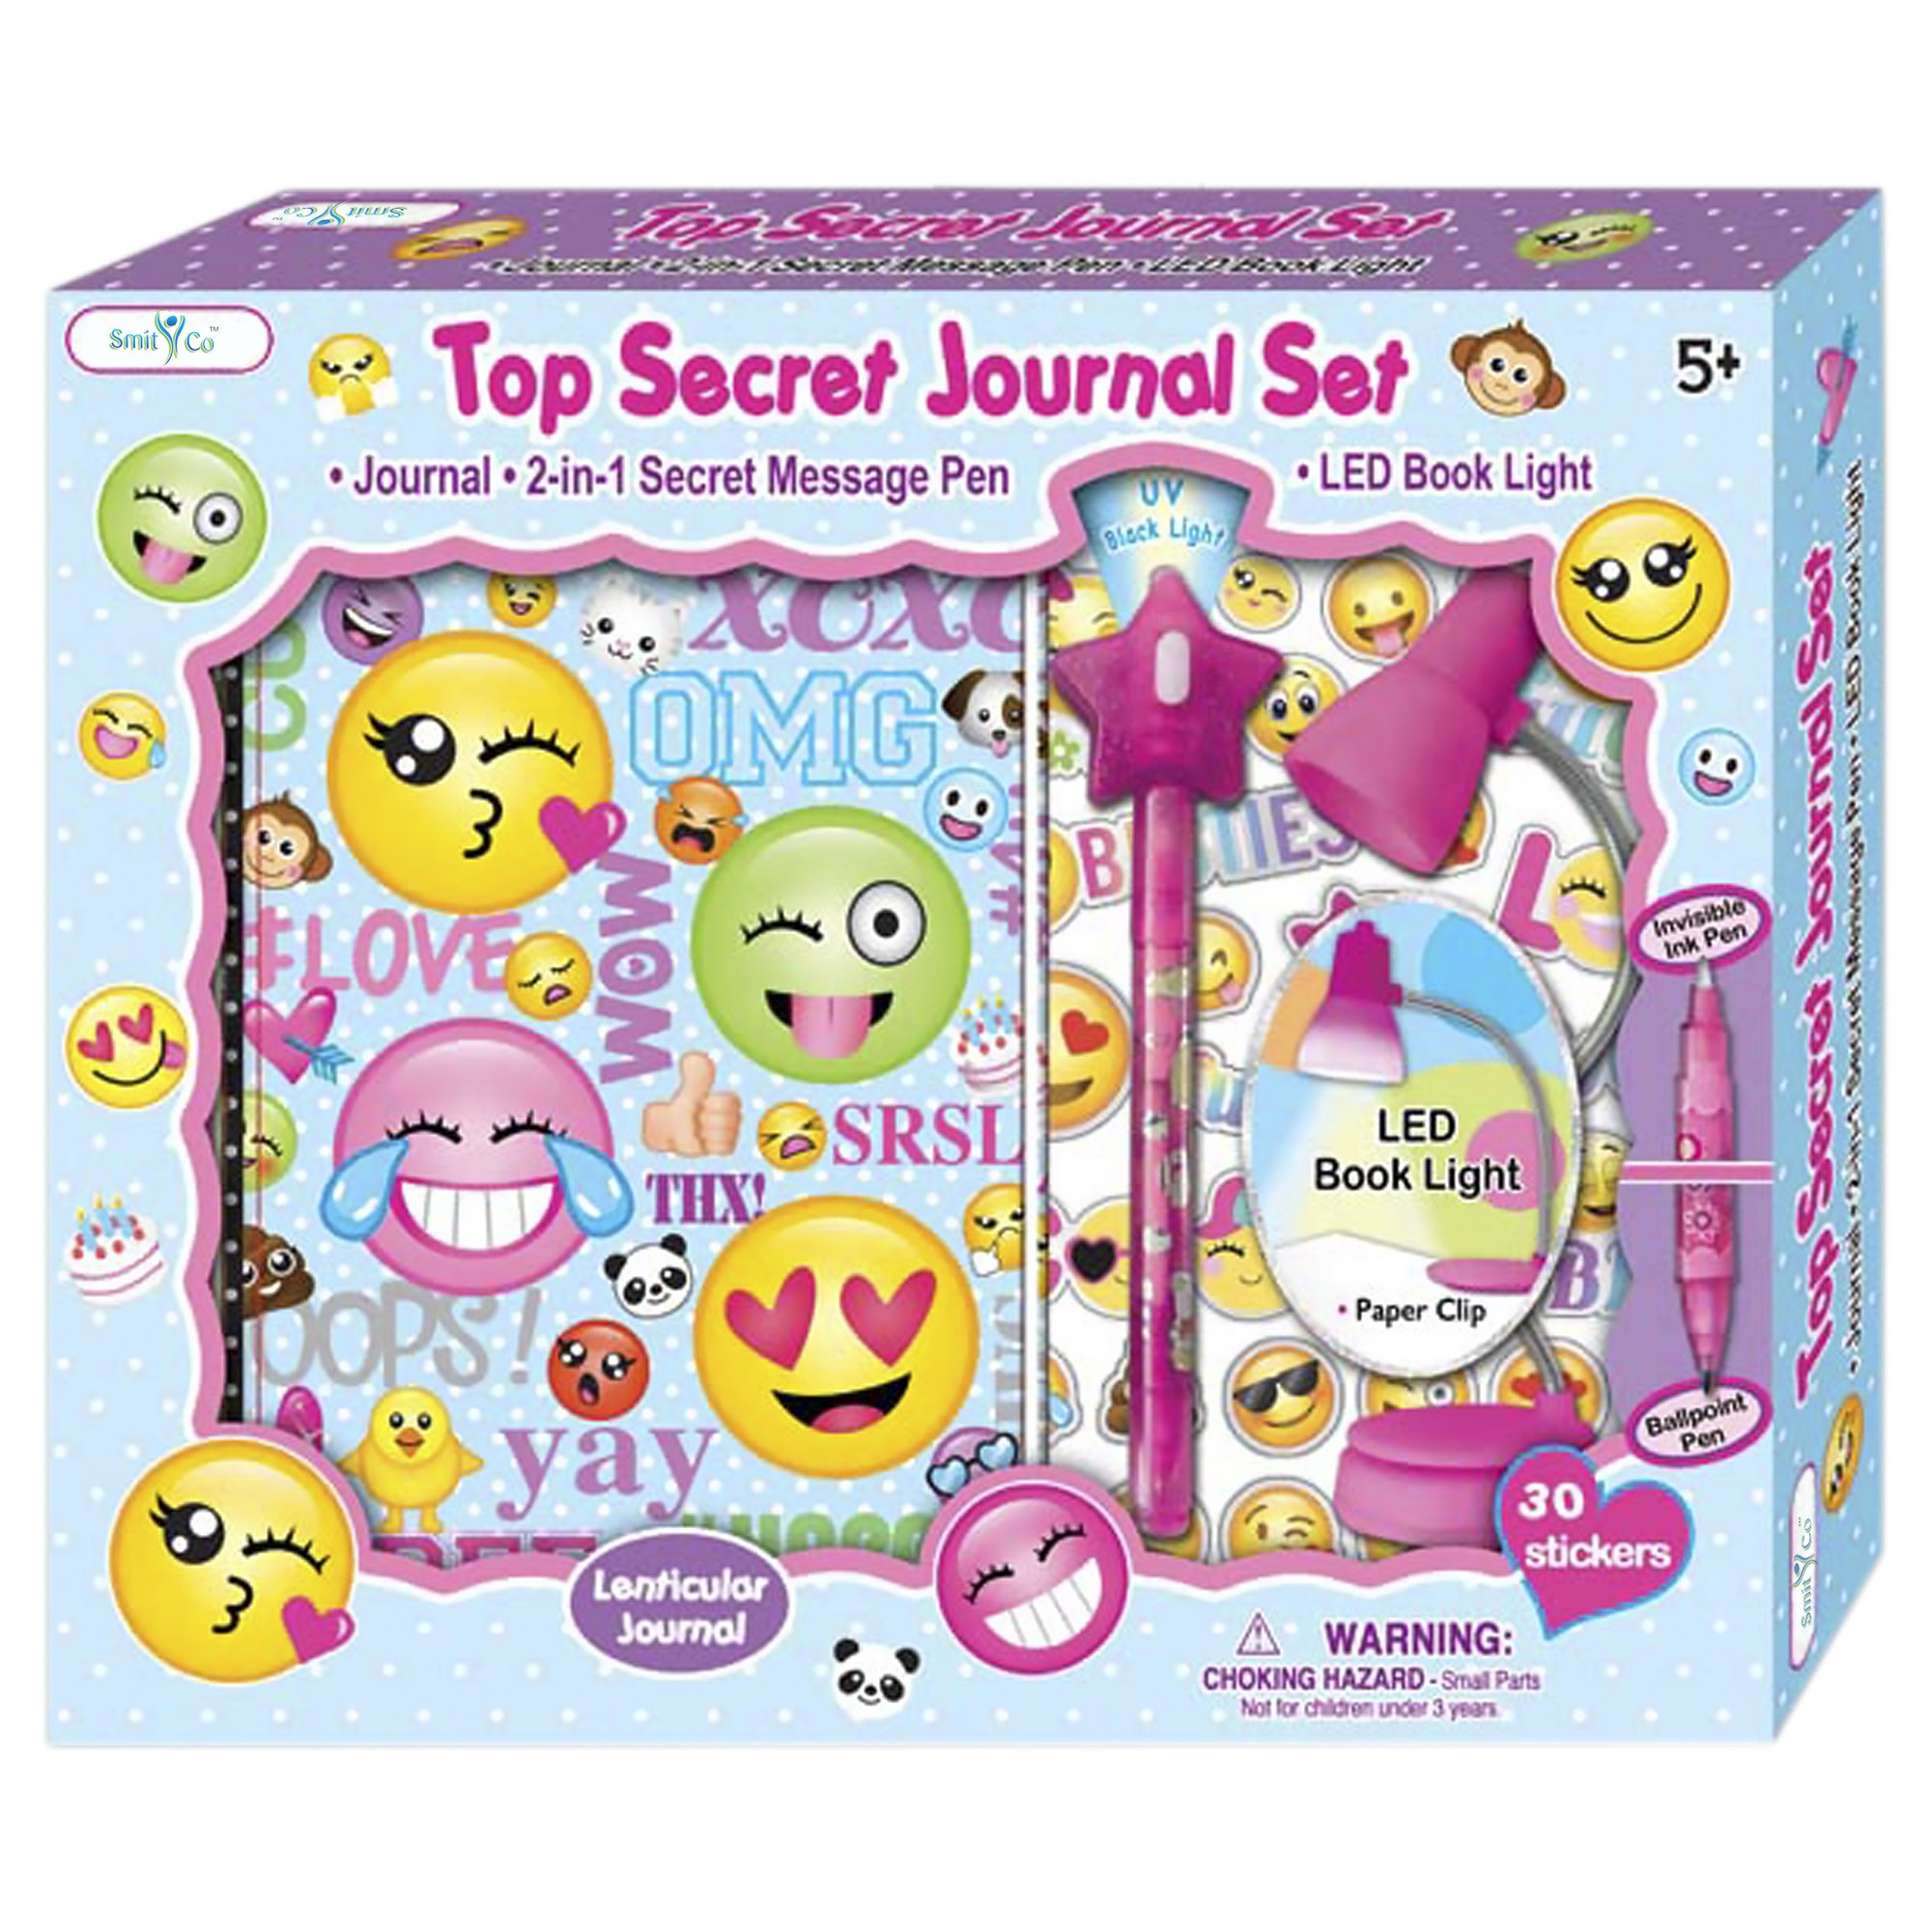 SMITCO Journal for Girls - Cute Emoji Lined Diary Book Set - Birthday Gift for 5 to 12 Year Old Kids with Invisible Ink Pen and Clip On LED Light to Keep Her Secrets Safe - First Writing Diaries